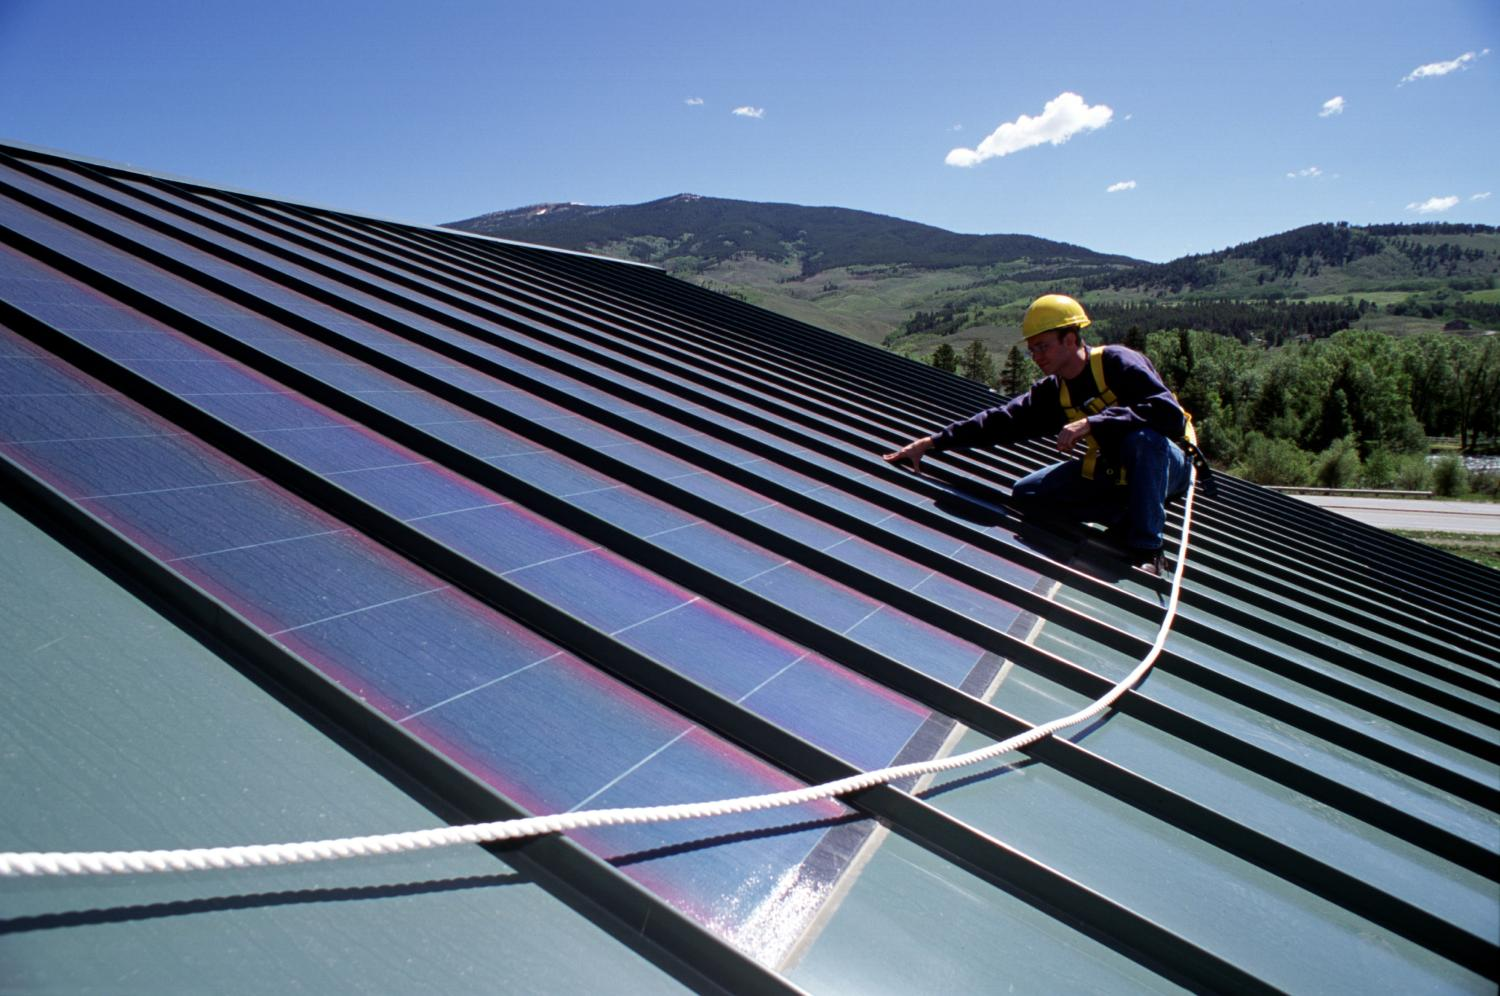 Does anyone have any online credited renewable energy course recommendations?